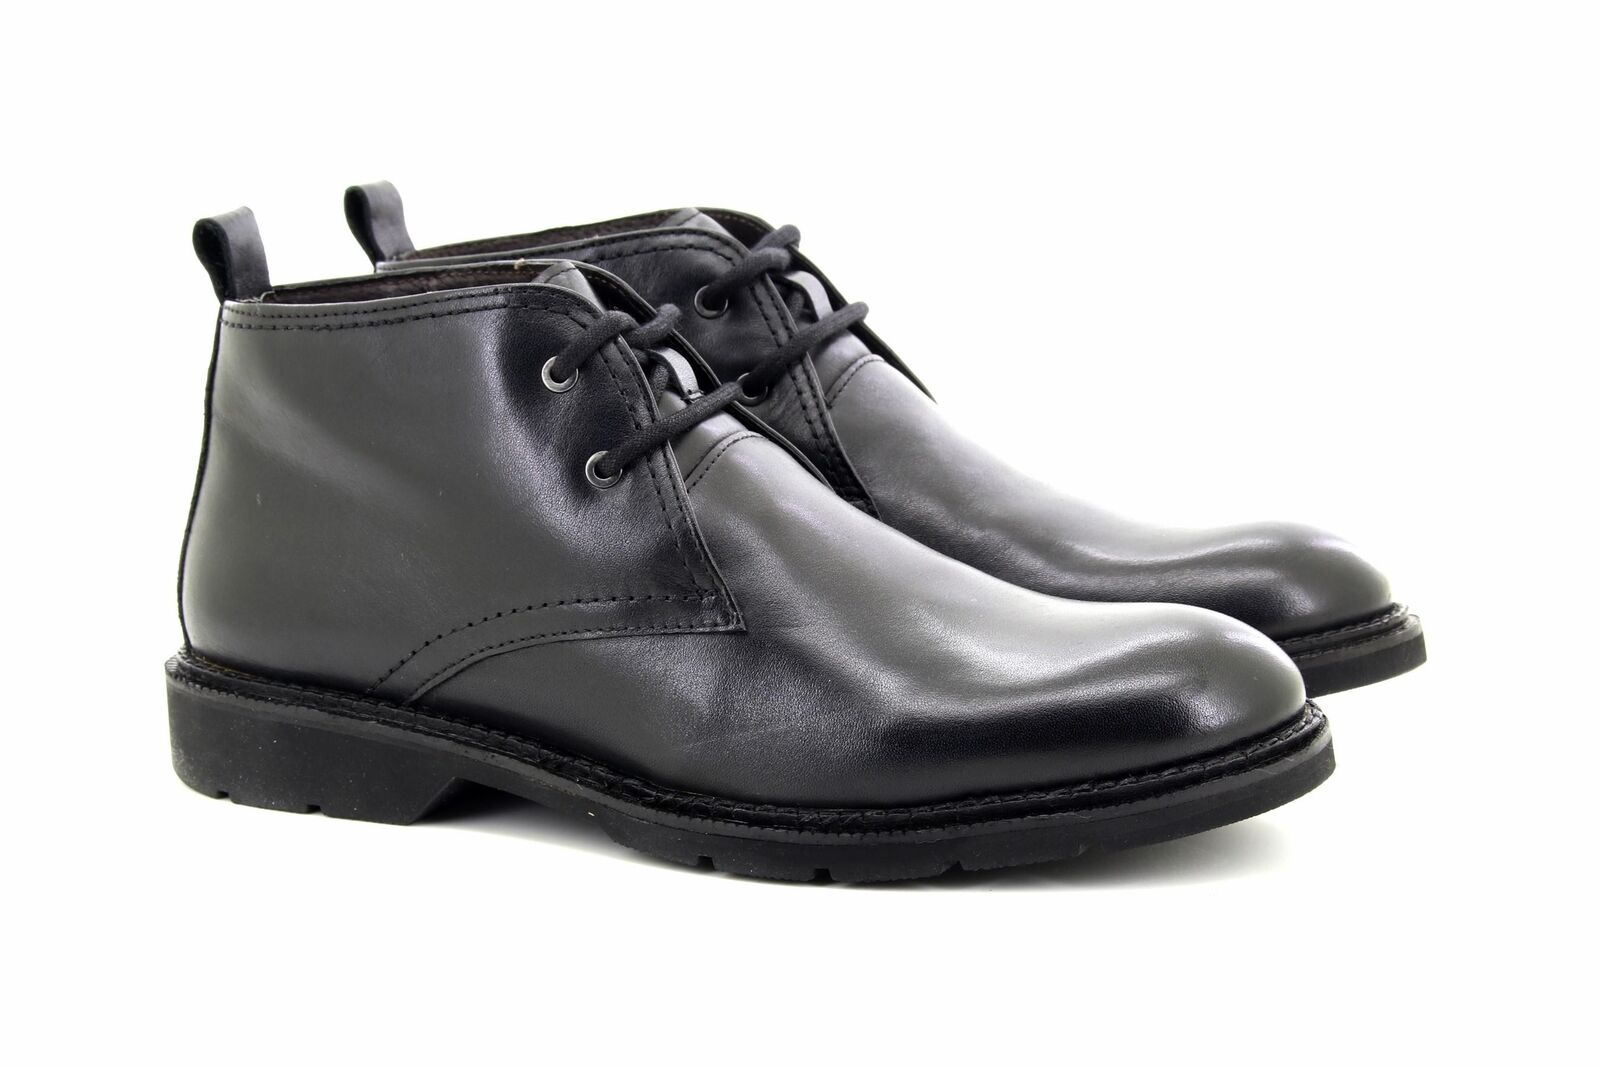 Roamers Flexmaster Ankle Boots Chukka Black Leather